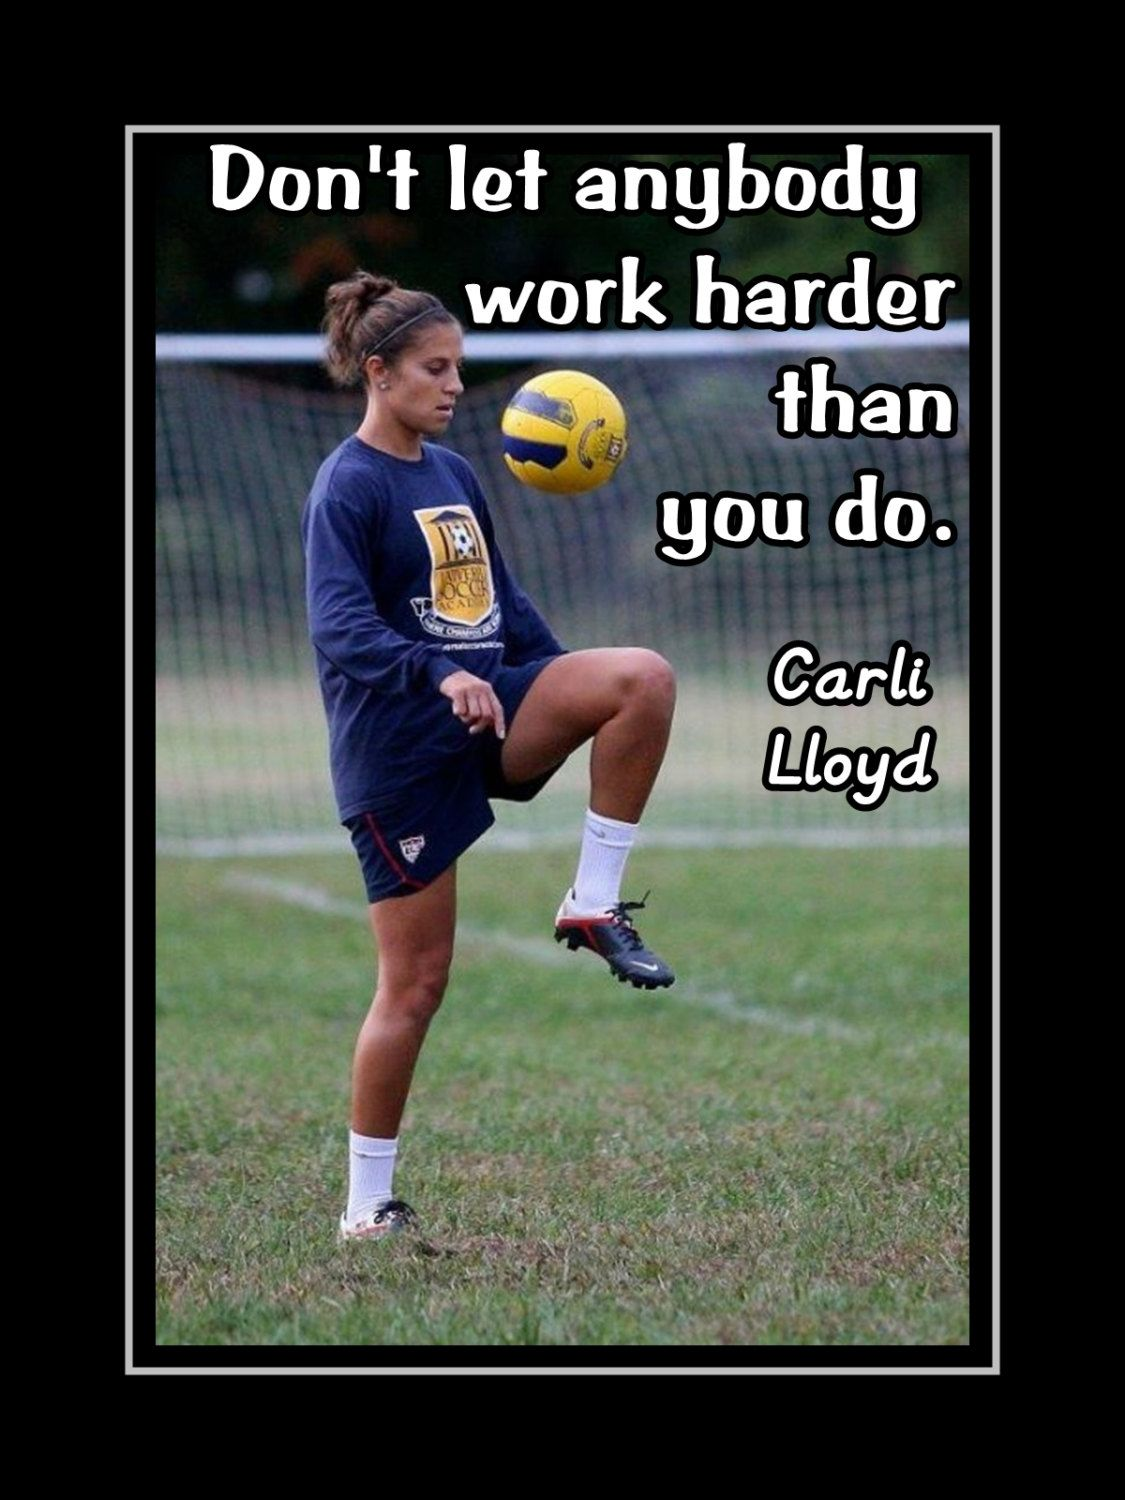 Carli Lloyd Quotes Carli Lloyd Motivational Poster Soccer Art Gift Hard Work Quote